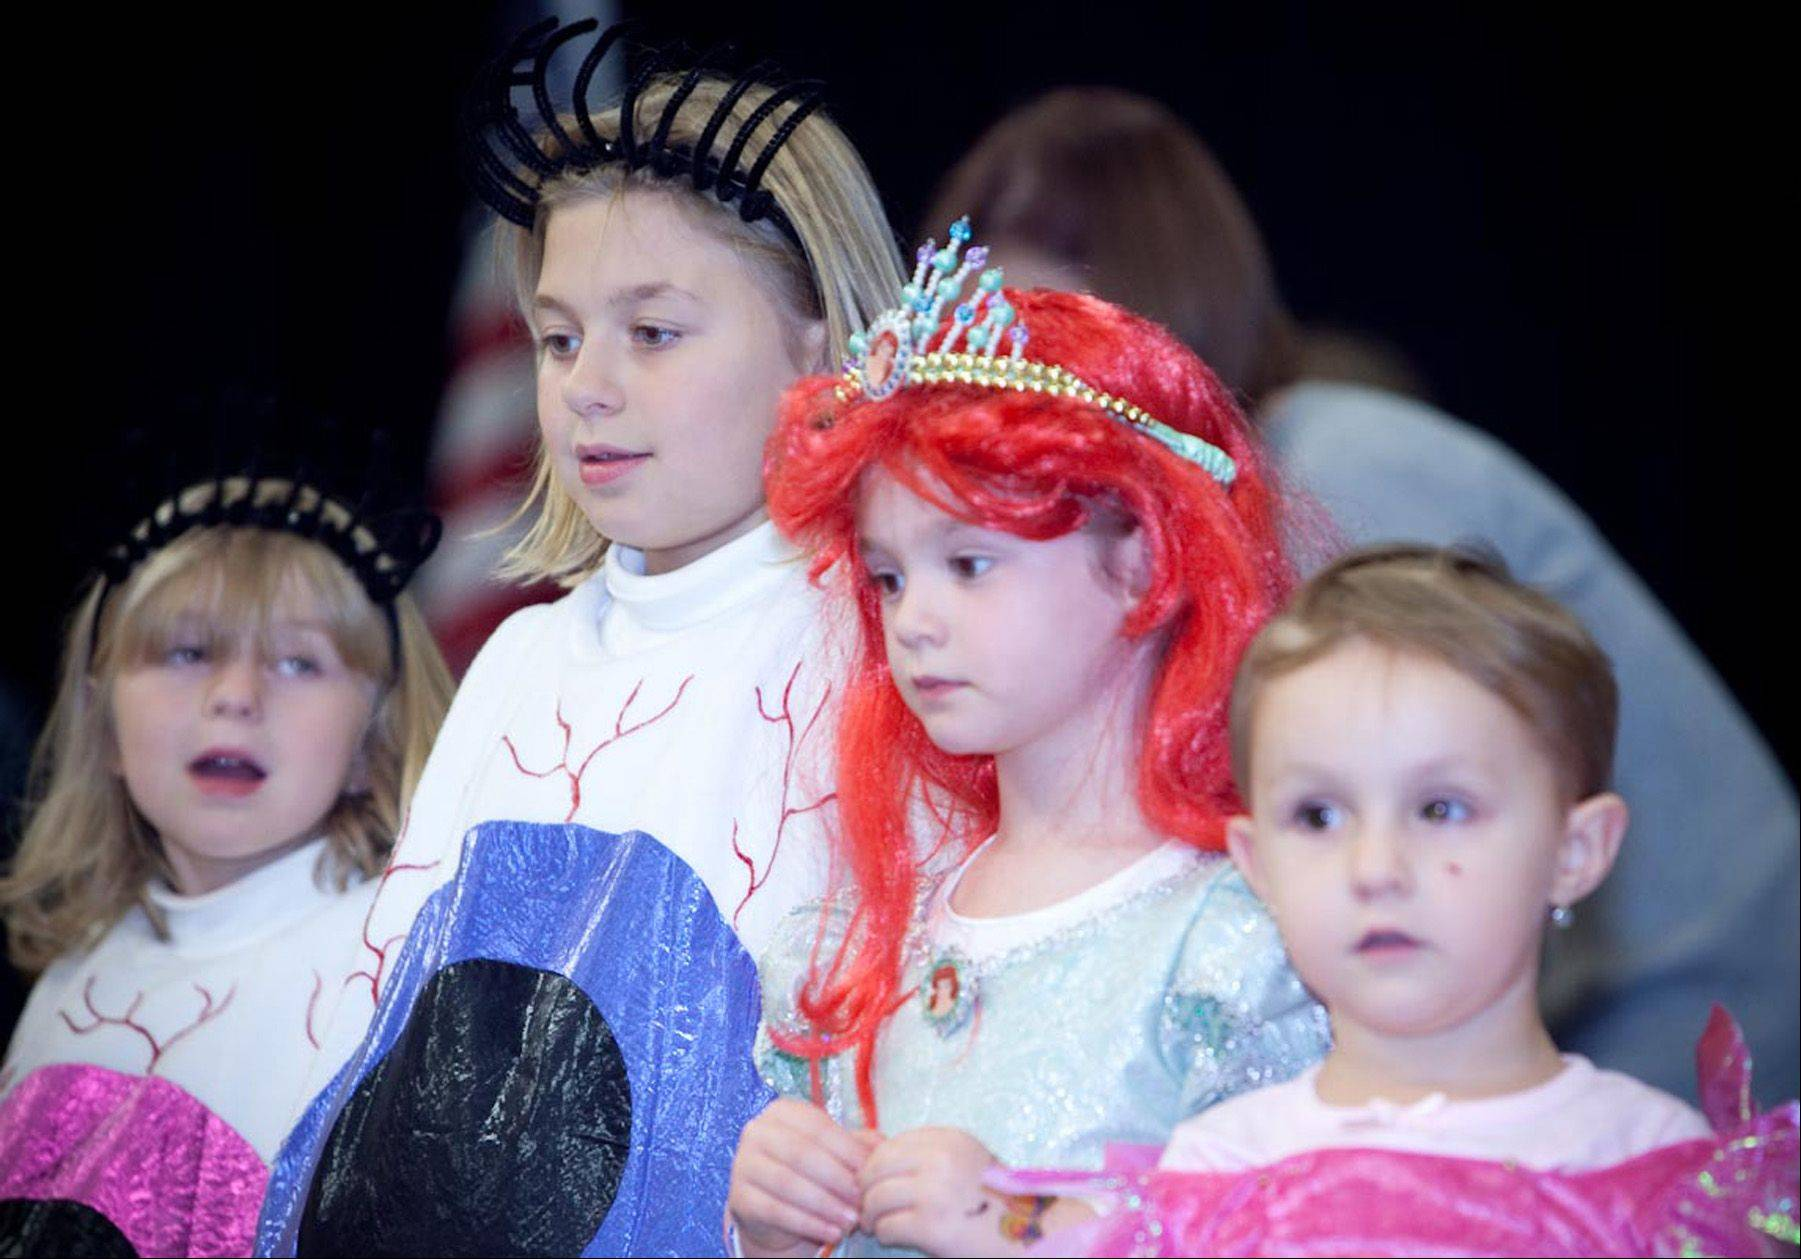 Children will be part of a costume parade and get to show off their outfits onstage during Halloween Family Fun Night Oct. 28 at the Prisco Community Center in Aurora.